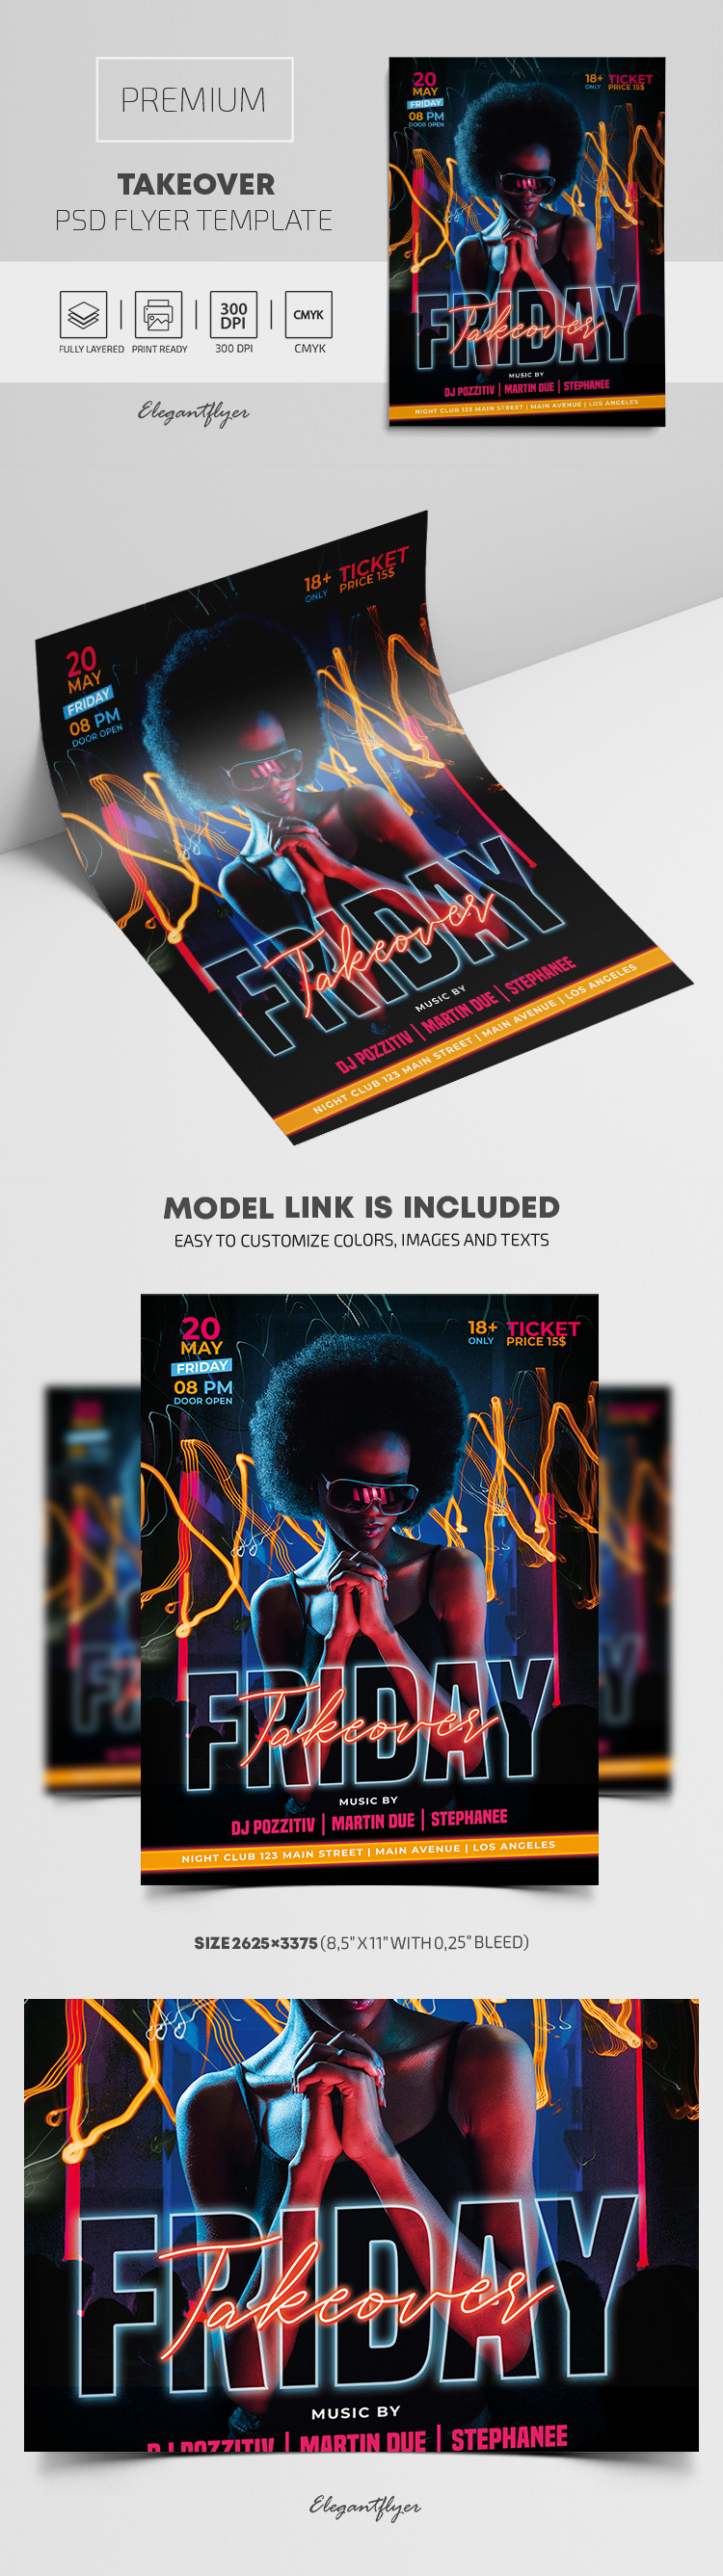 Friday Takeover Party – Premium PSD Flyer Template